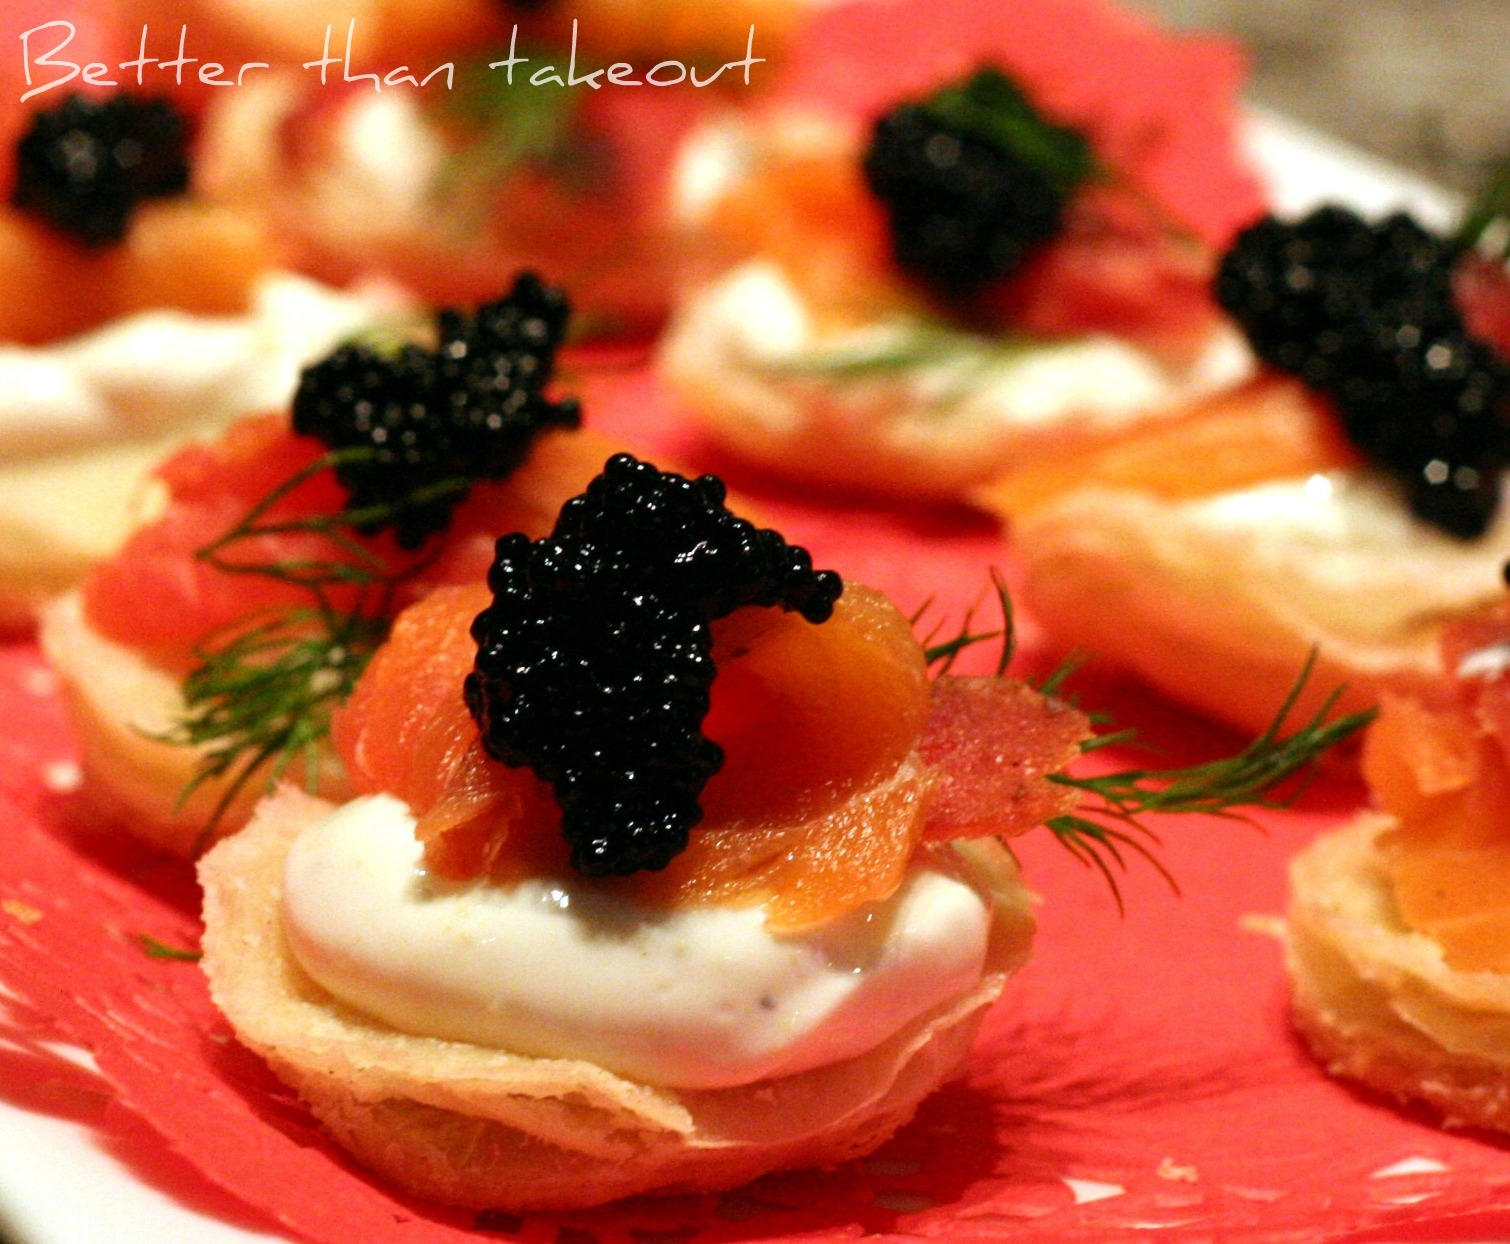 Better than takeout: Smoked Salmon Blini with Caviar  Dill